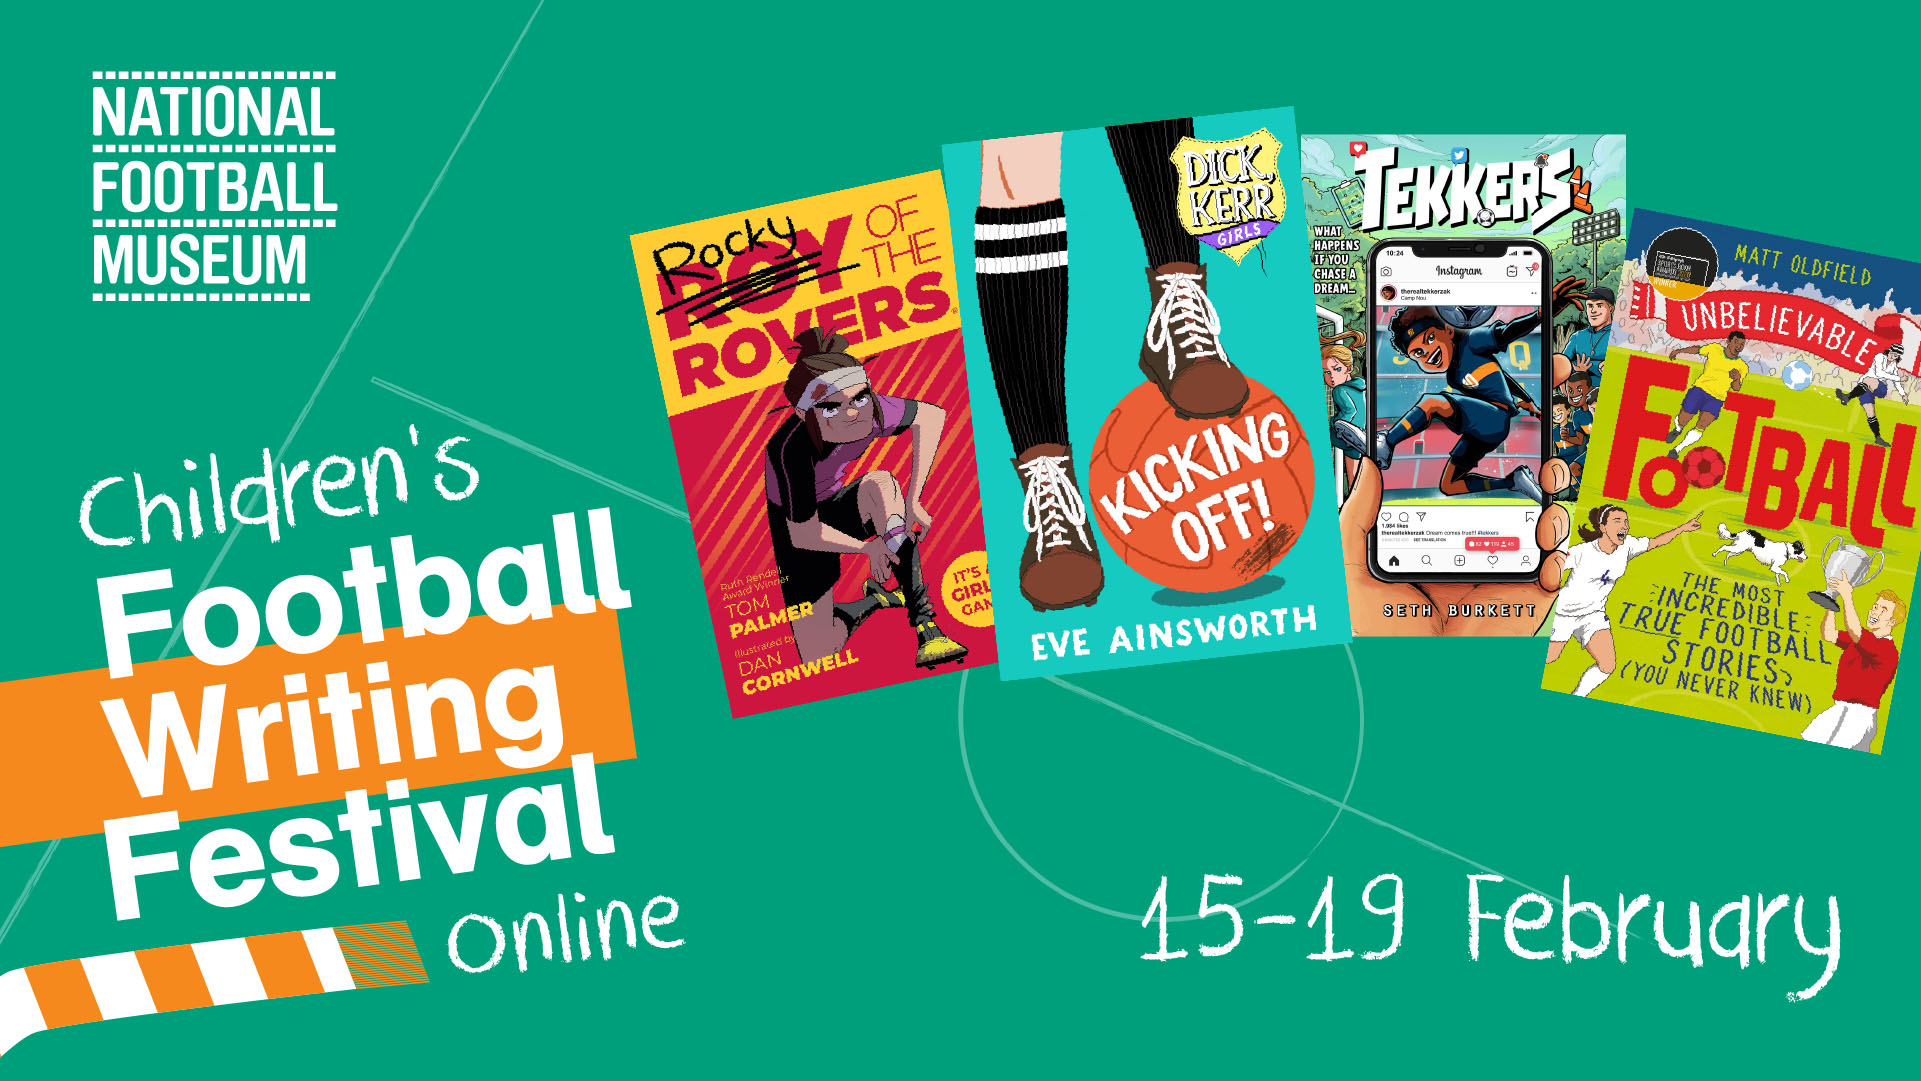 Children's Football Writing Festival What's On updated